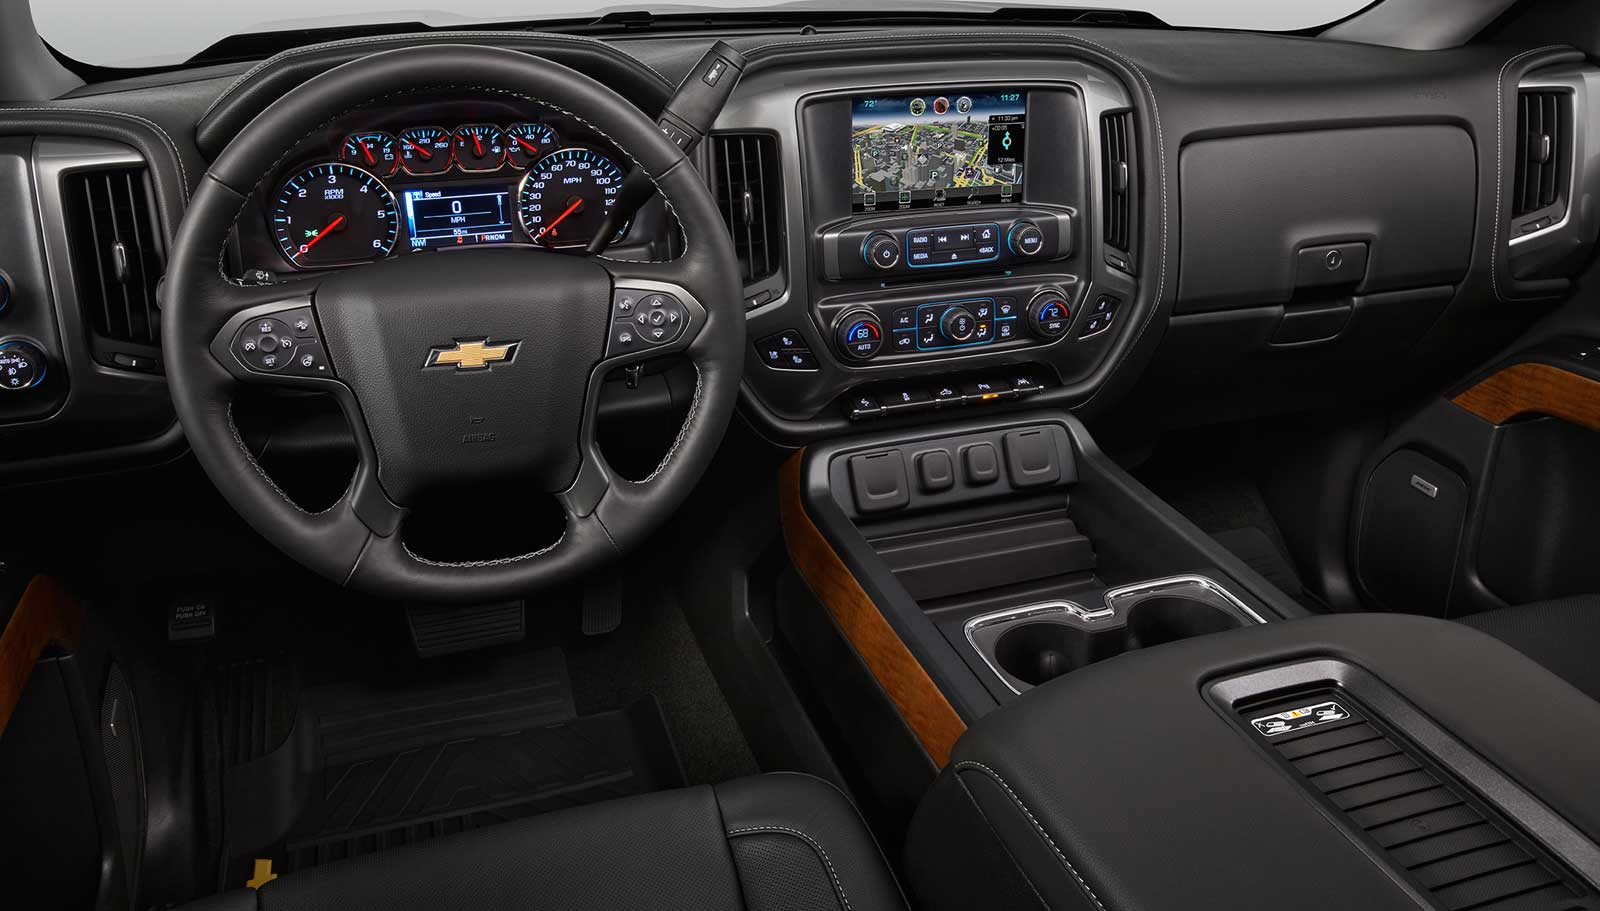 ... Costco 2016 Chevrolet Silverado Interior 01 ...